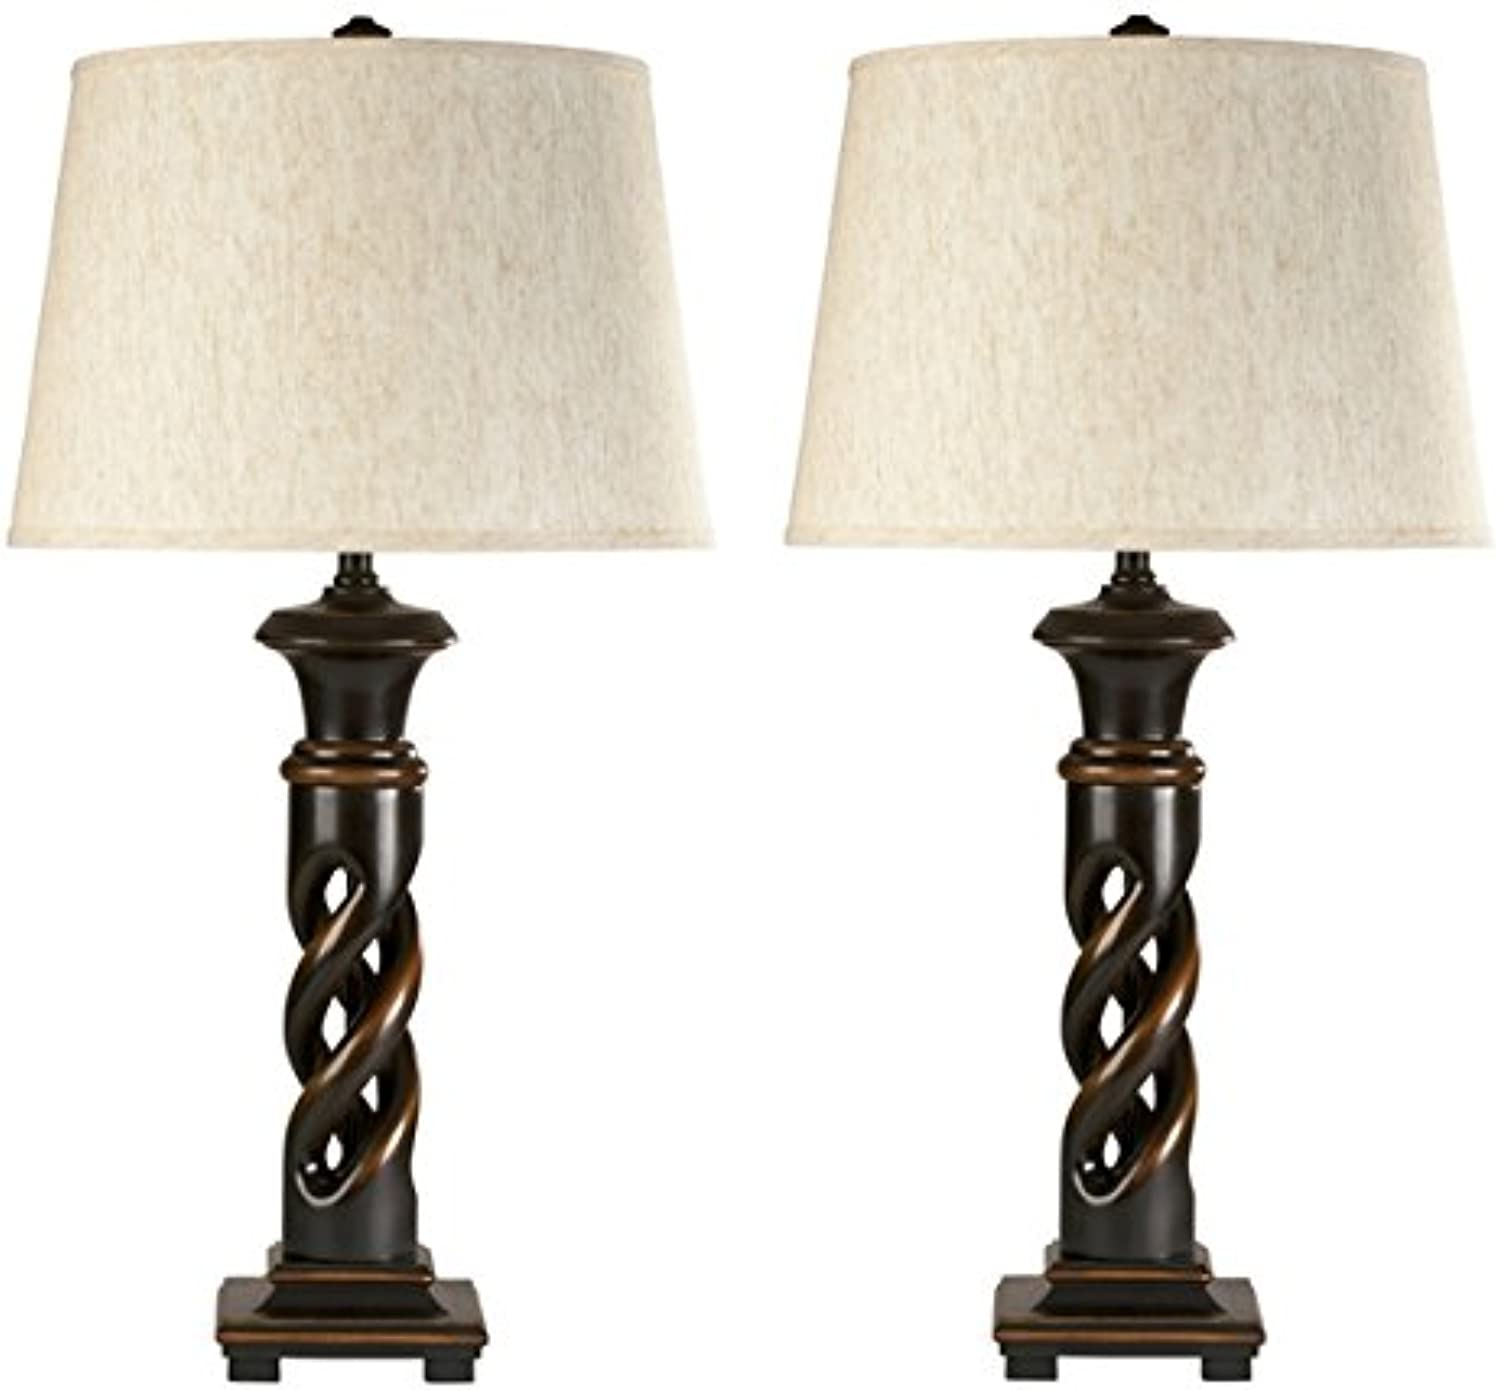 Ashley Furniture Signature Design - Fallon Table Lamp - Classic French Turned Wood Design - Set of 2 - Black